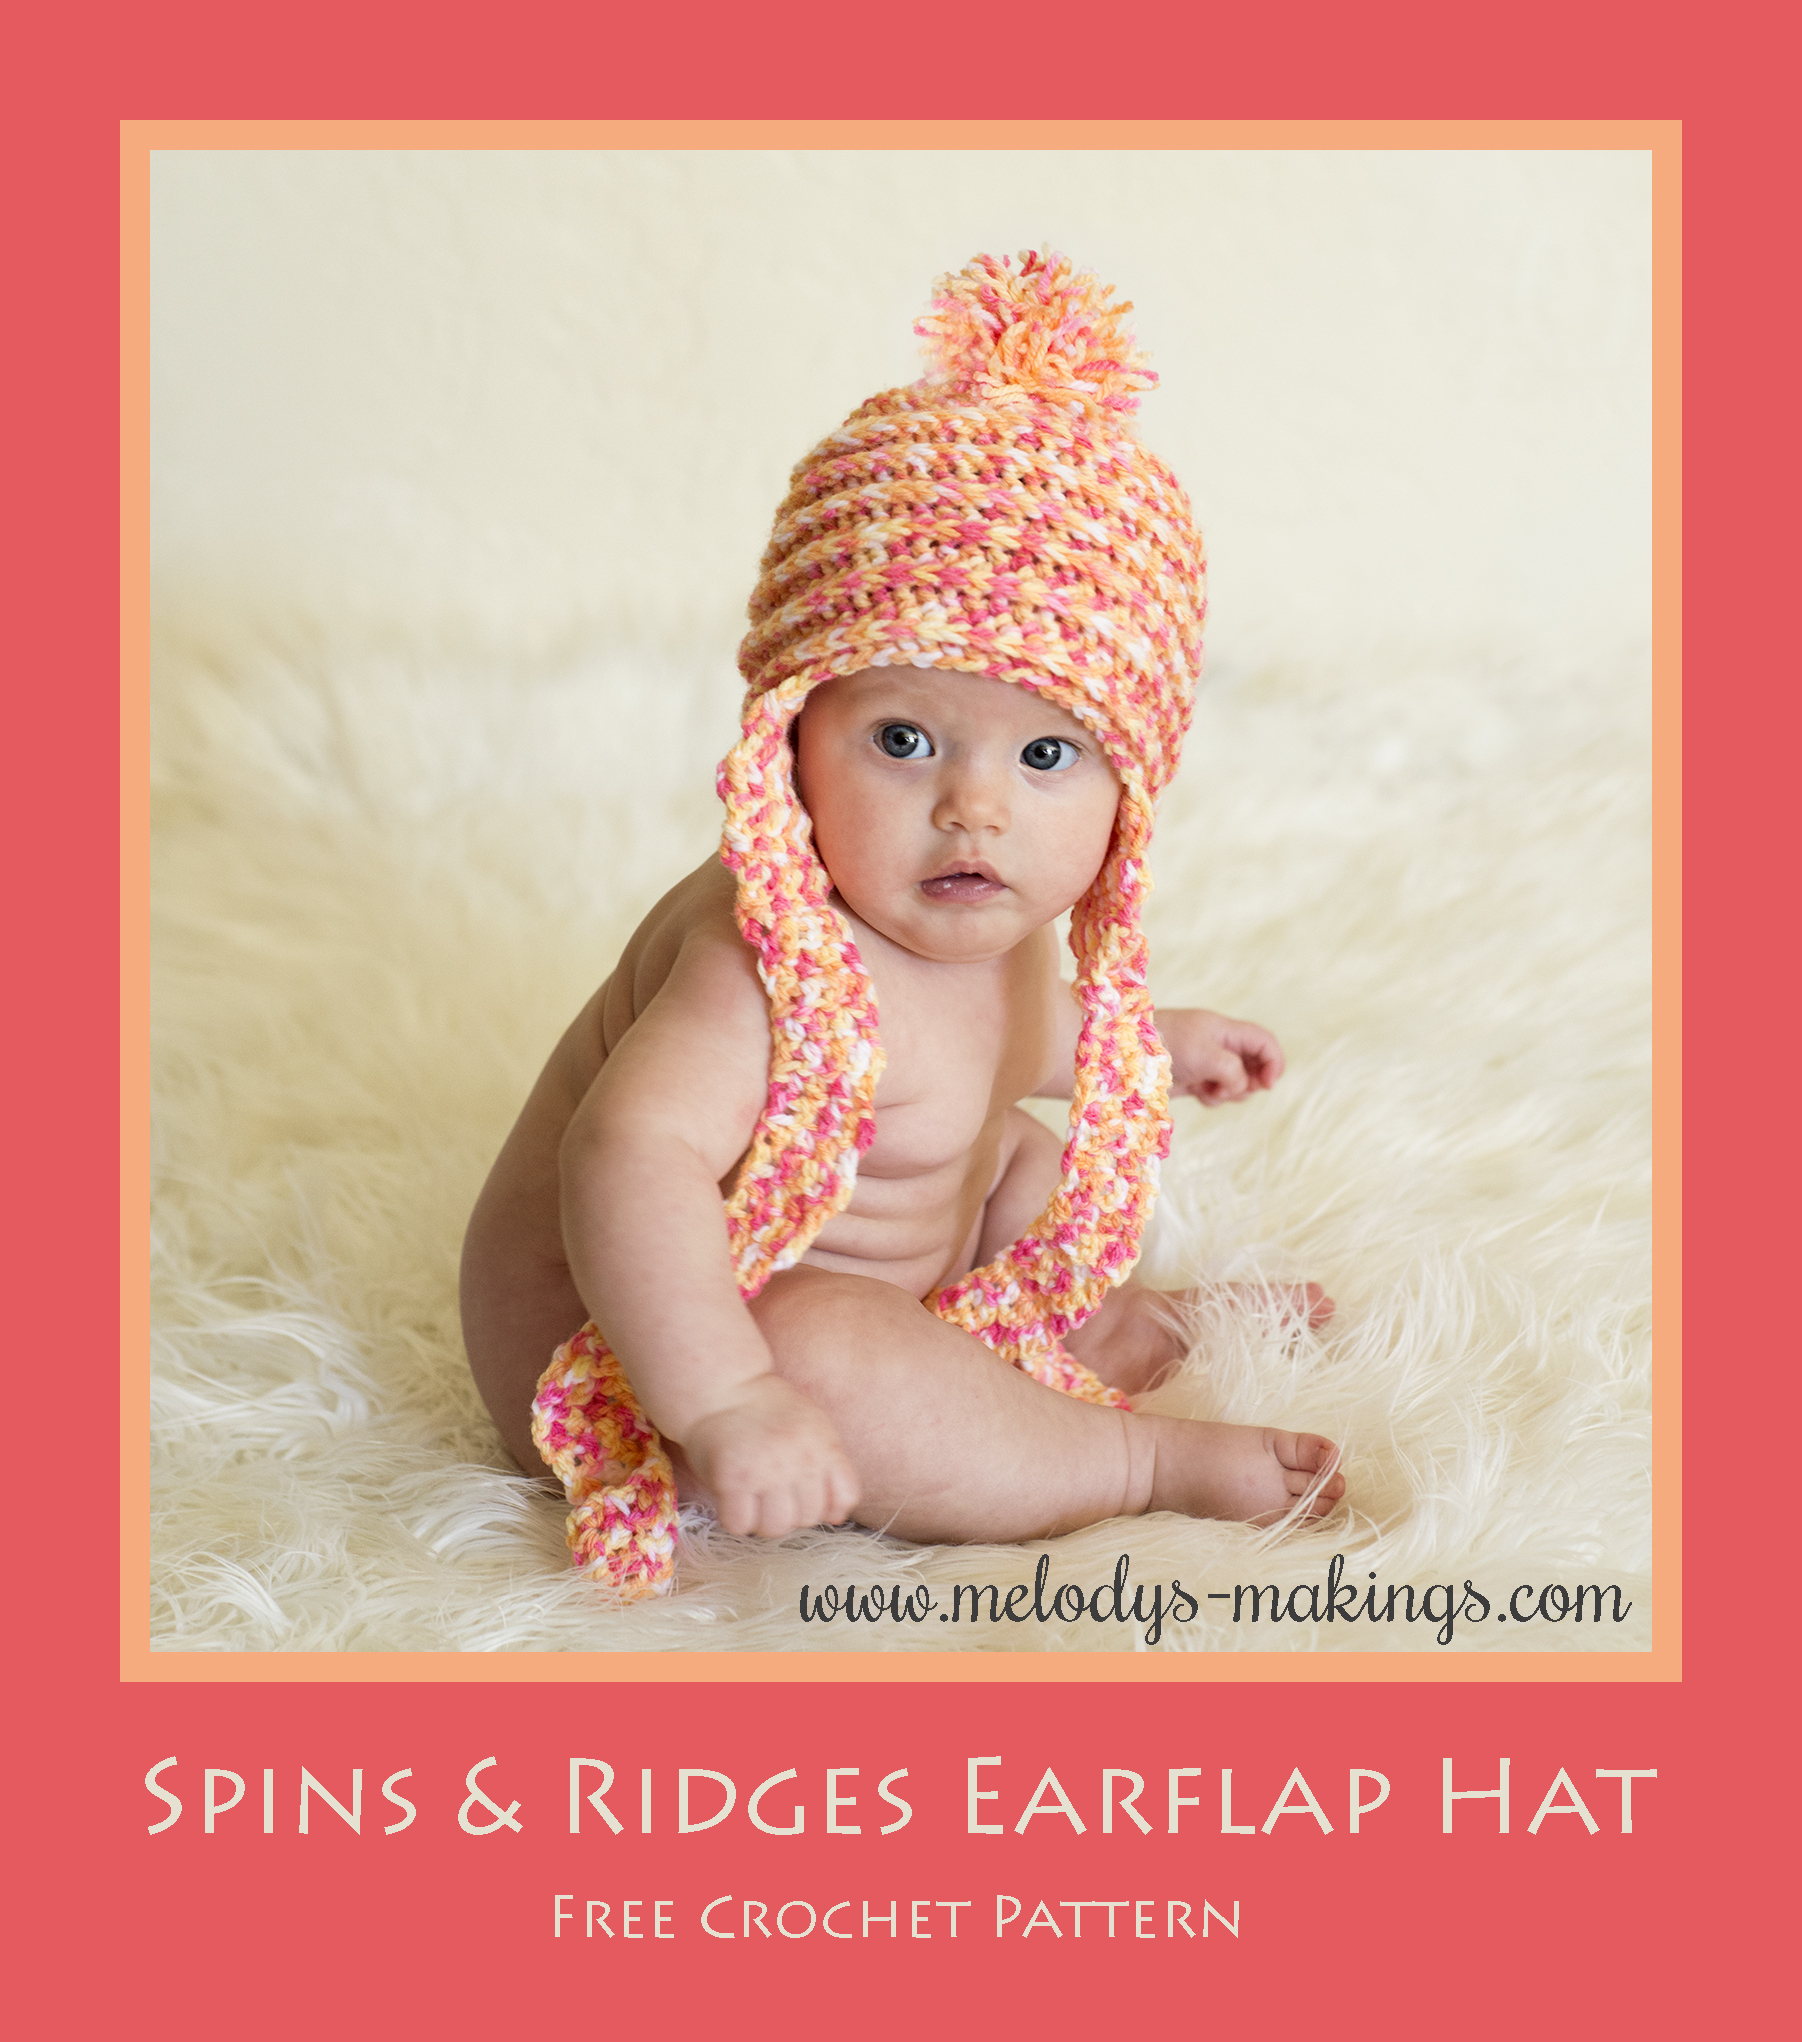 691227d4740 Spins and Ridges Crochet Pattern 2. Spins and Ridges Earflap Hat. Free  Crochet Pattern!